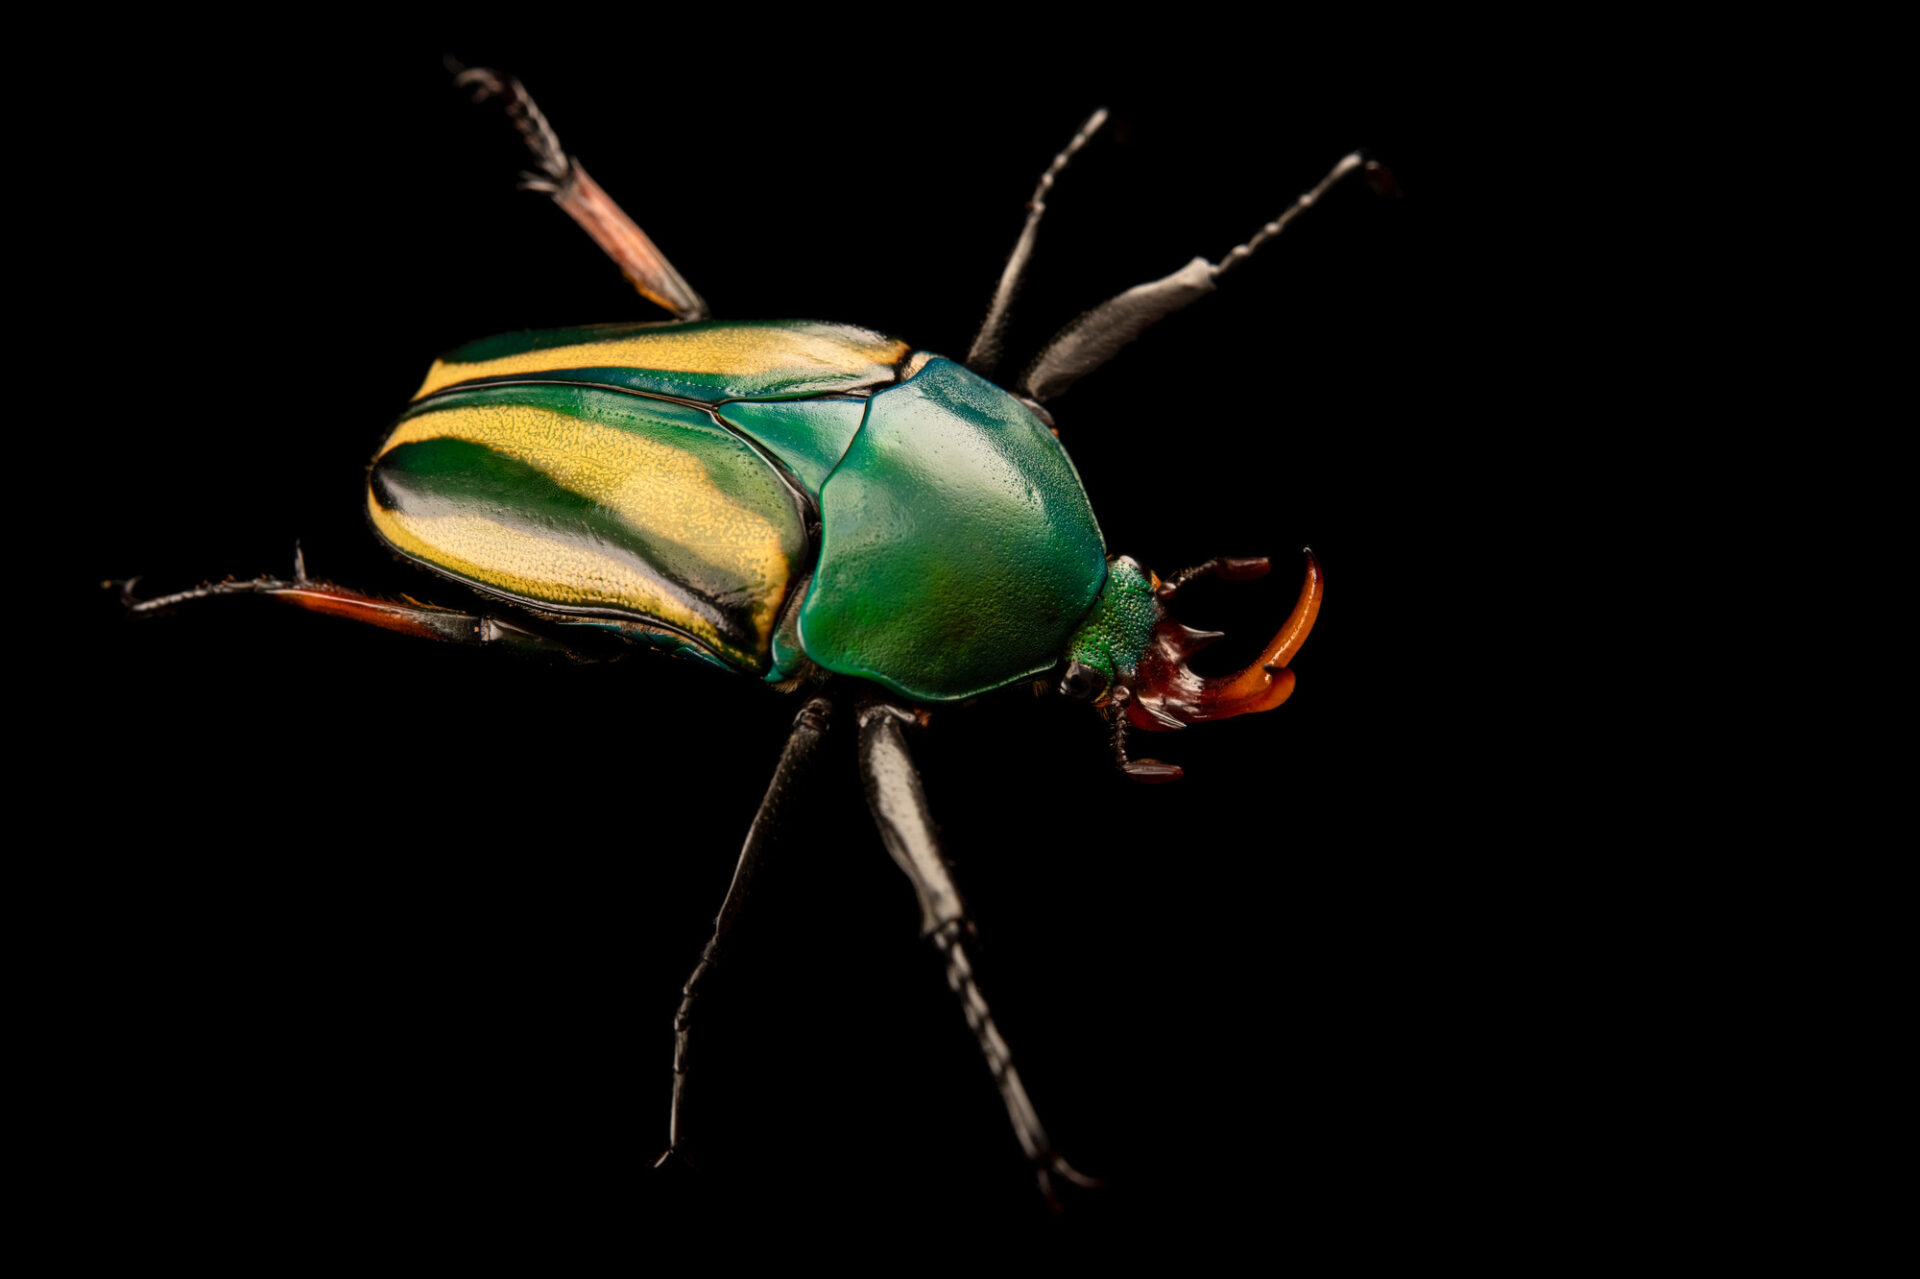 Photo: A striped love beetle (Eudicella gralli pauperata) at the Aquarium Berlin.